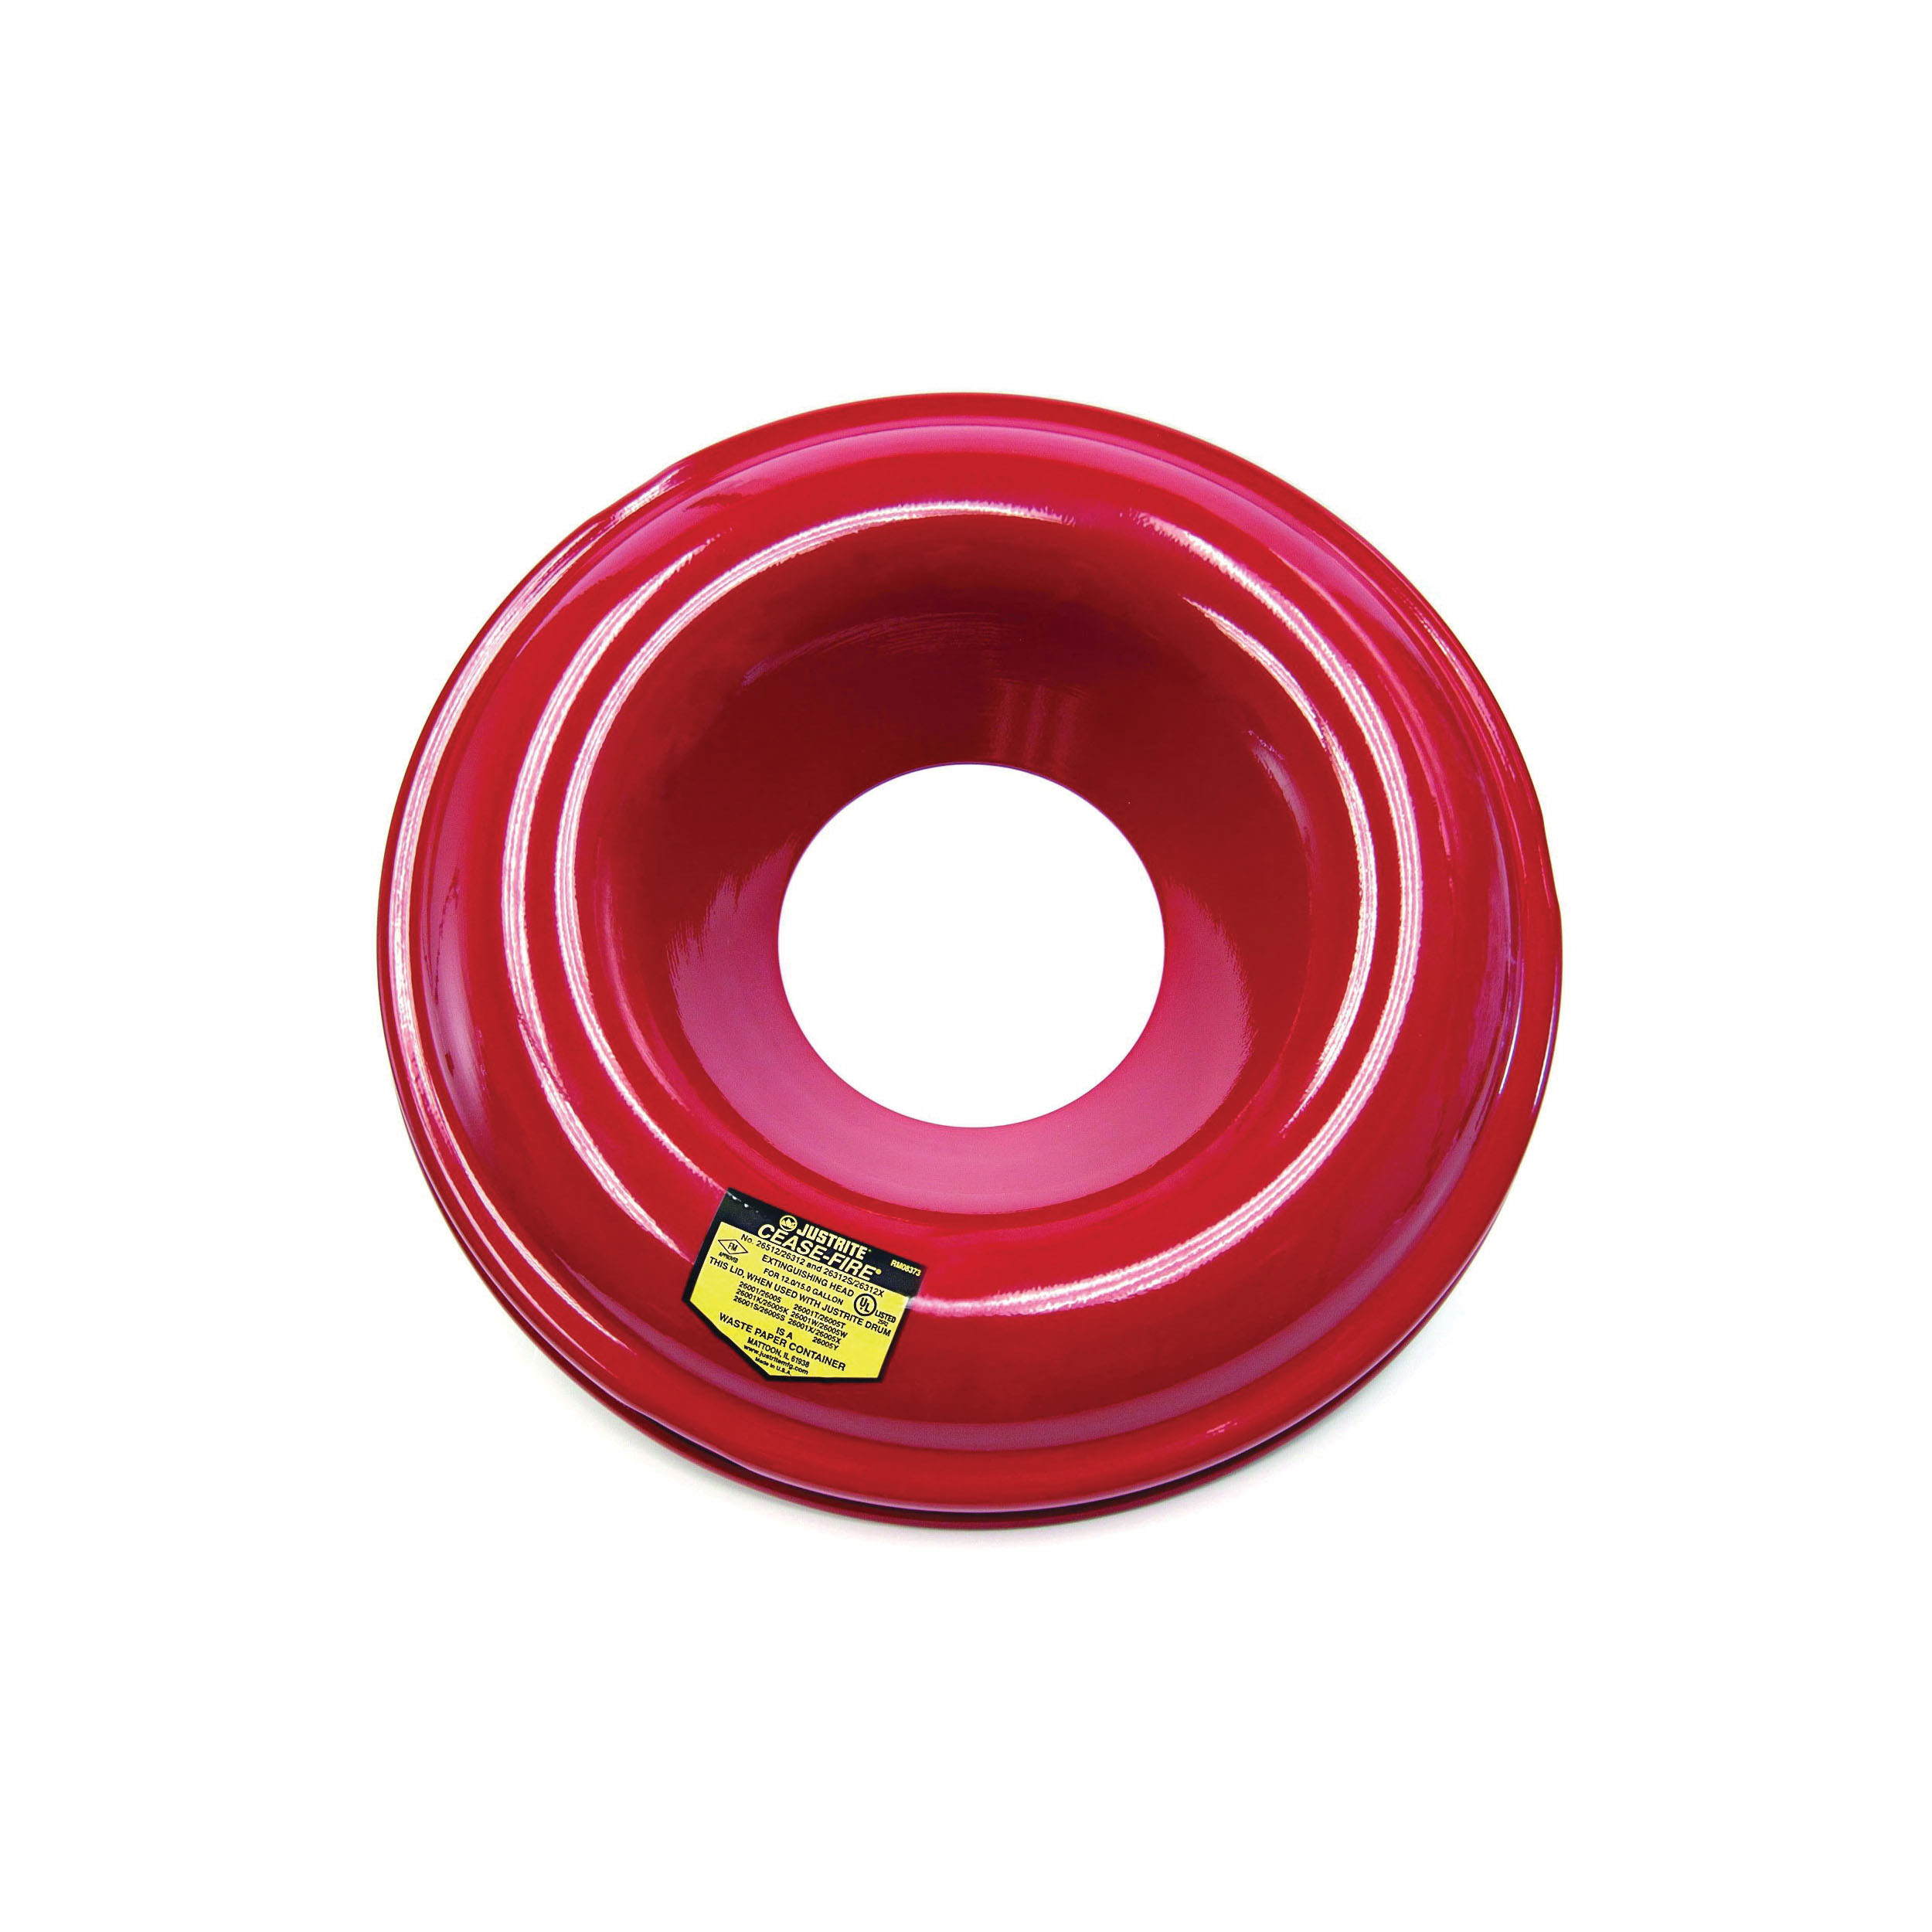 Justrite® 26312 Drum Can Head, 5-1/4 in Dia Opening 15-1/8 in OD, For Use With Cease-Fire® 12 to 15 gal Waste Receptacle Safety Drum Can, Steel, Red